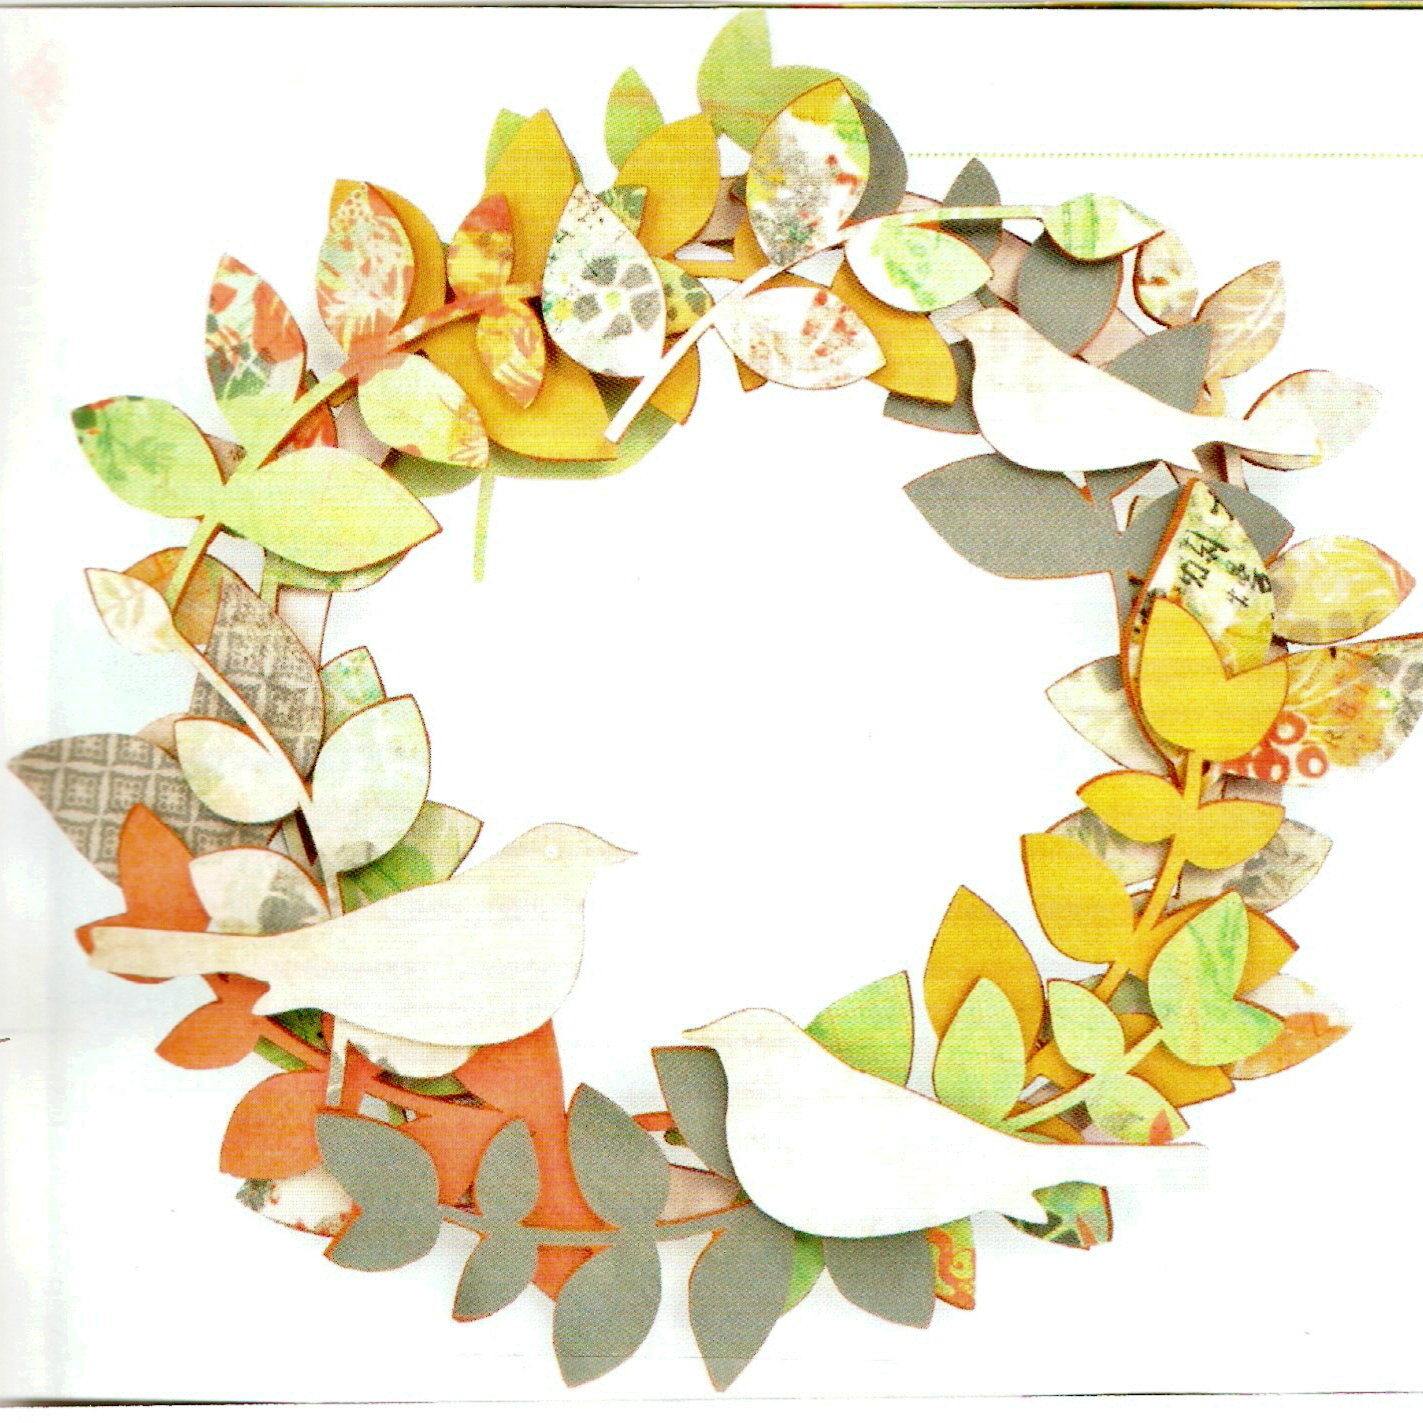 How to scrapbook materials - Assemble This Bird Wreath But Use Your Favorite Scrapbook Paper Some Paint Even A Touch Of Glitter To Decorate